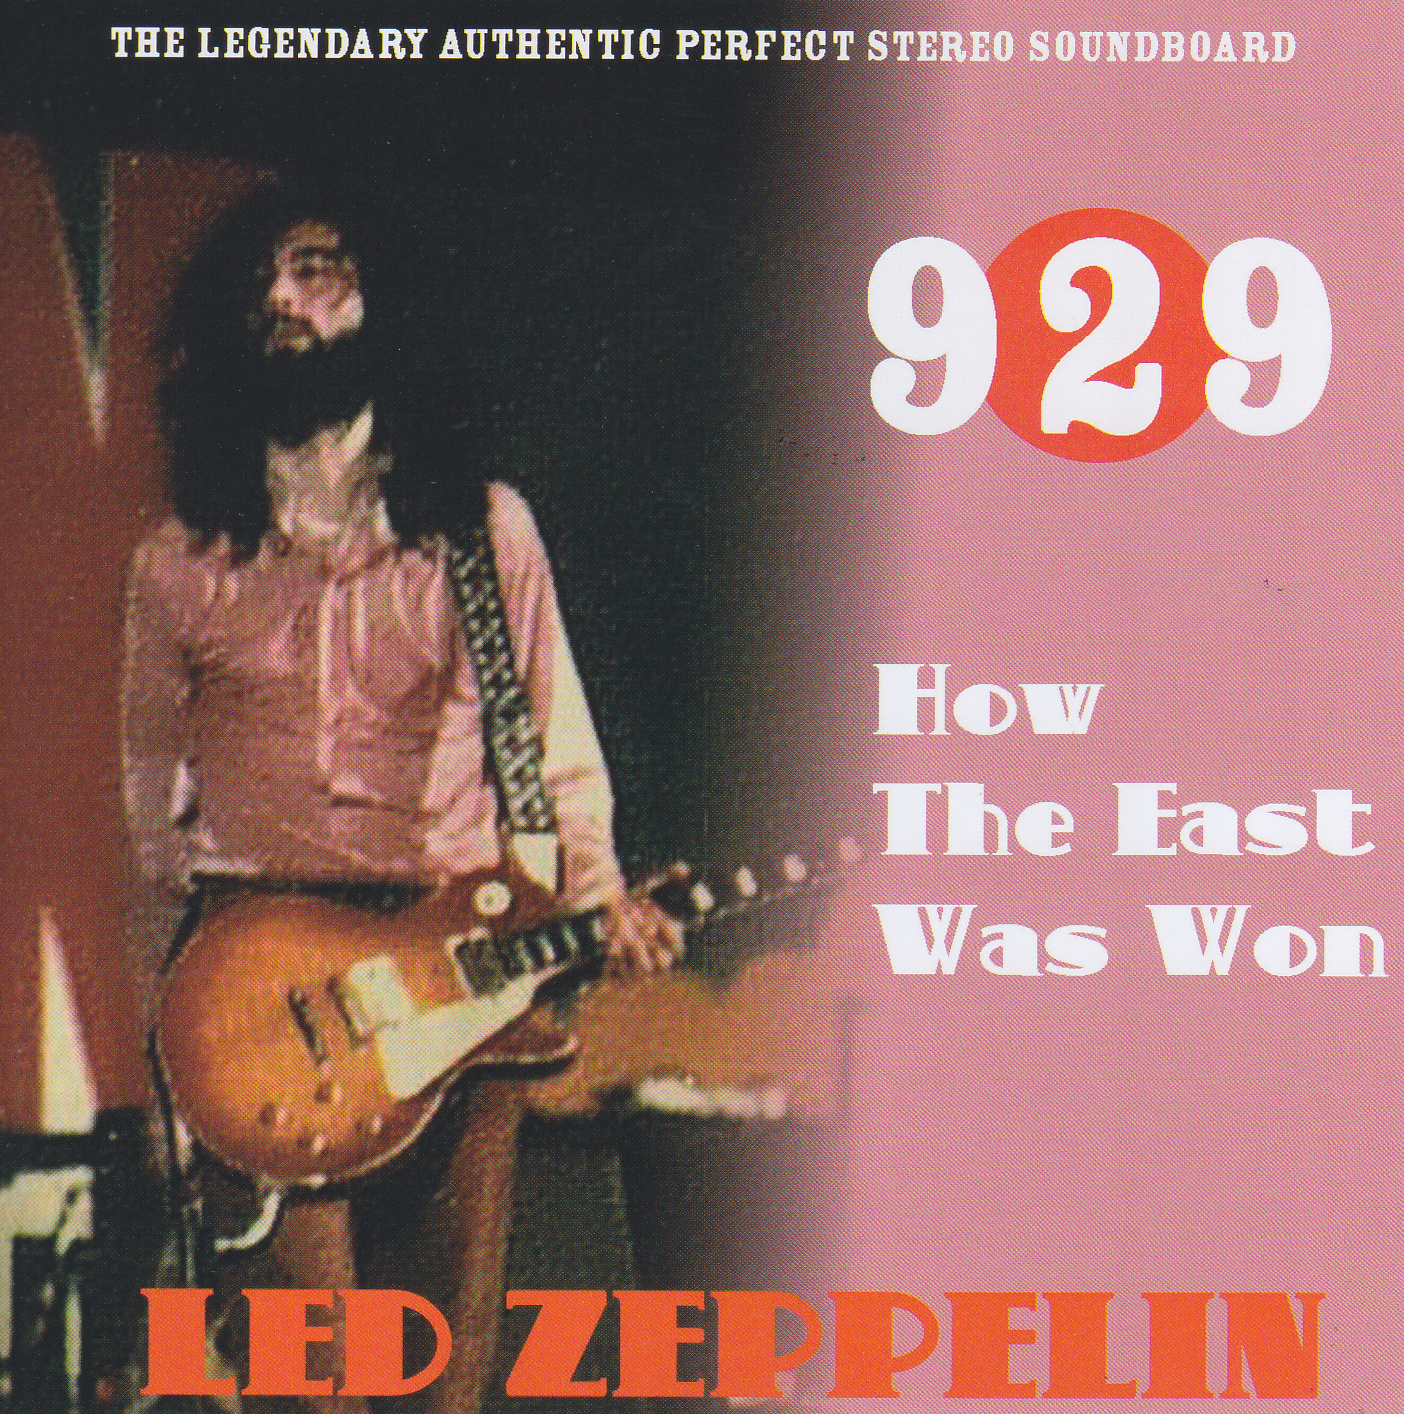 Led Zeppelin - How The East Was Won (2CD) Eelgrass 20272/20273